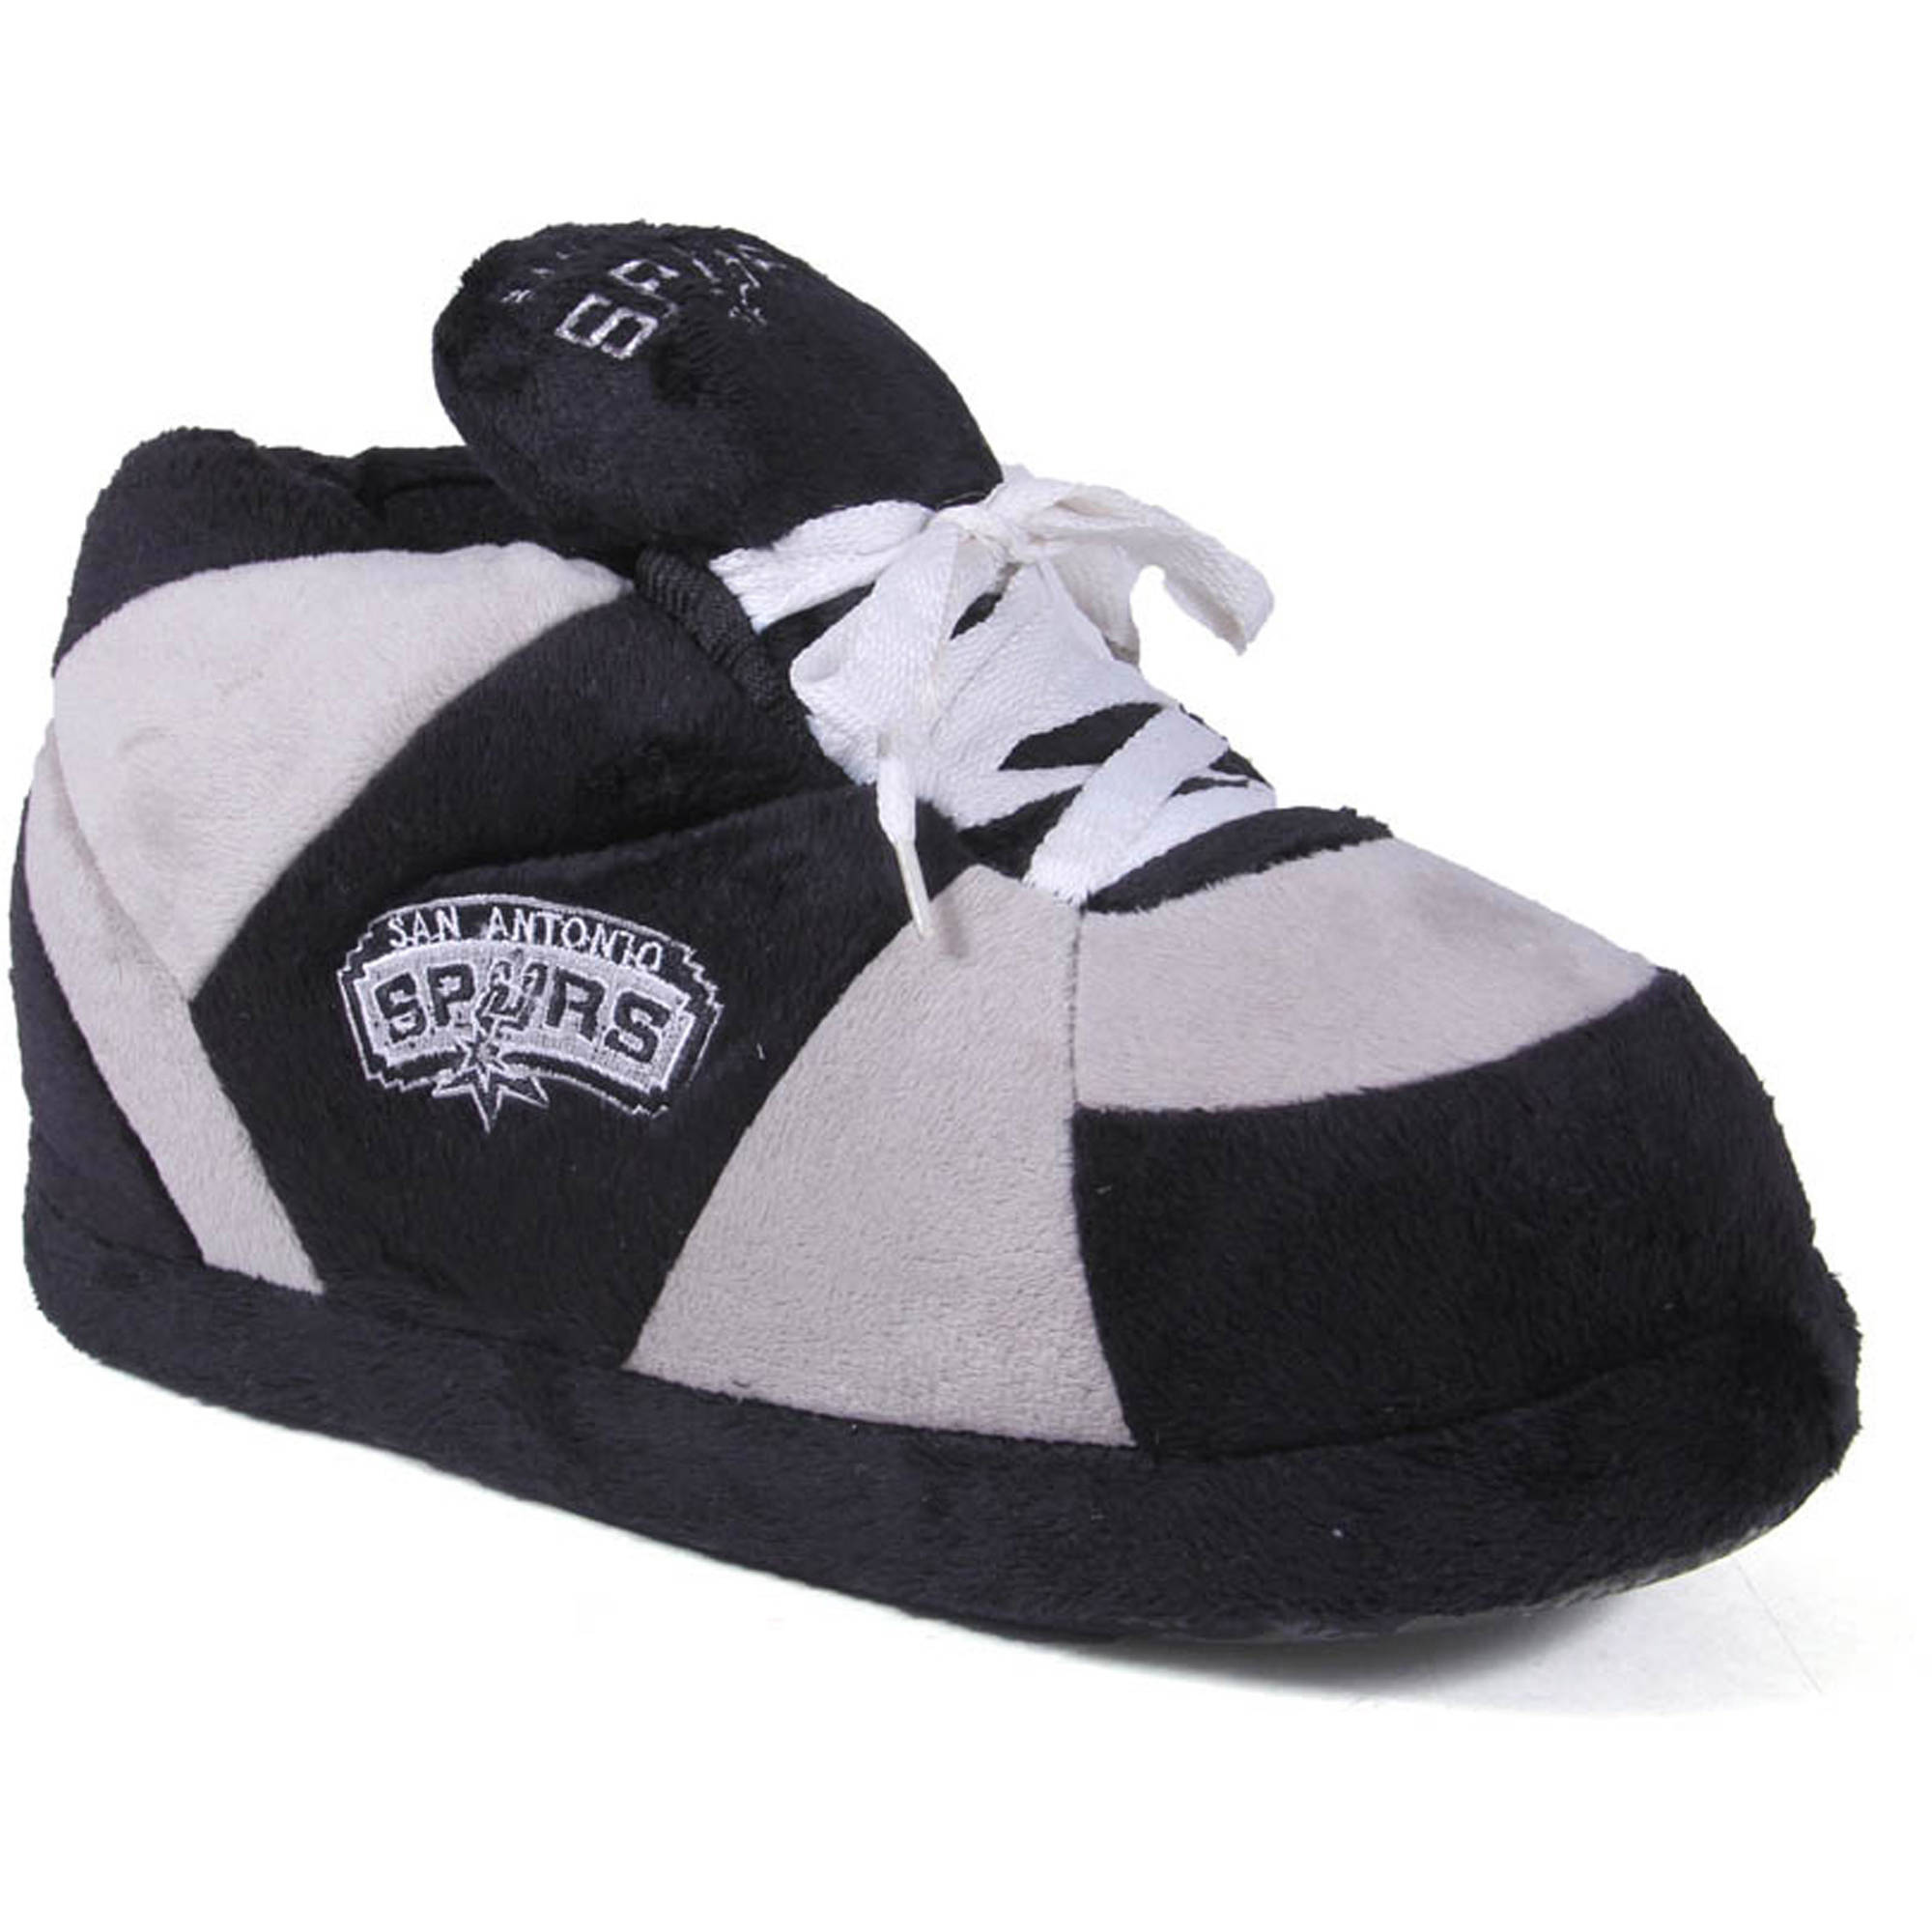 NBA Men's San Antonio Spurs Slipper